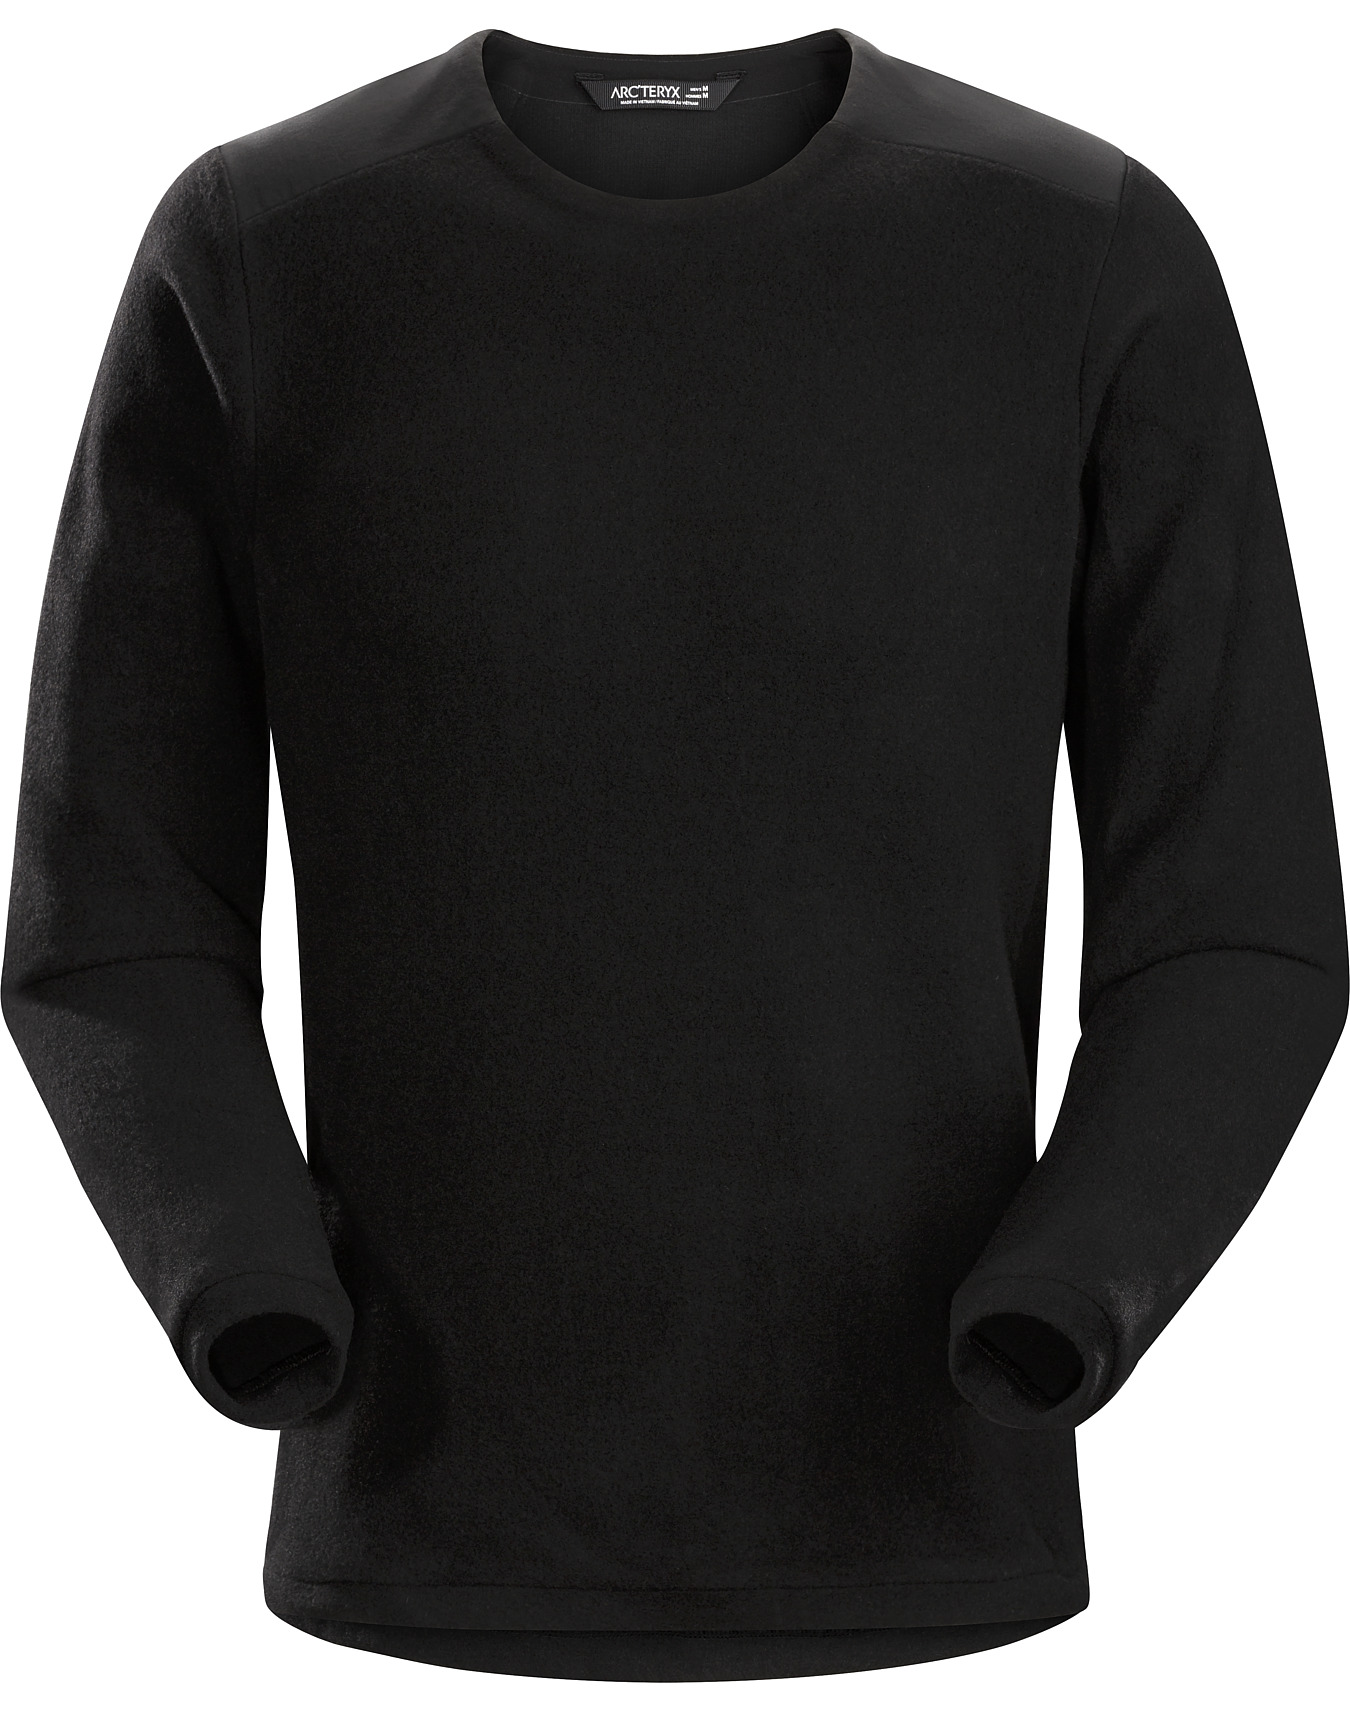 Donavan Crew Neck Sweater / Mens / Arc'teryx